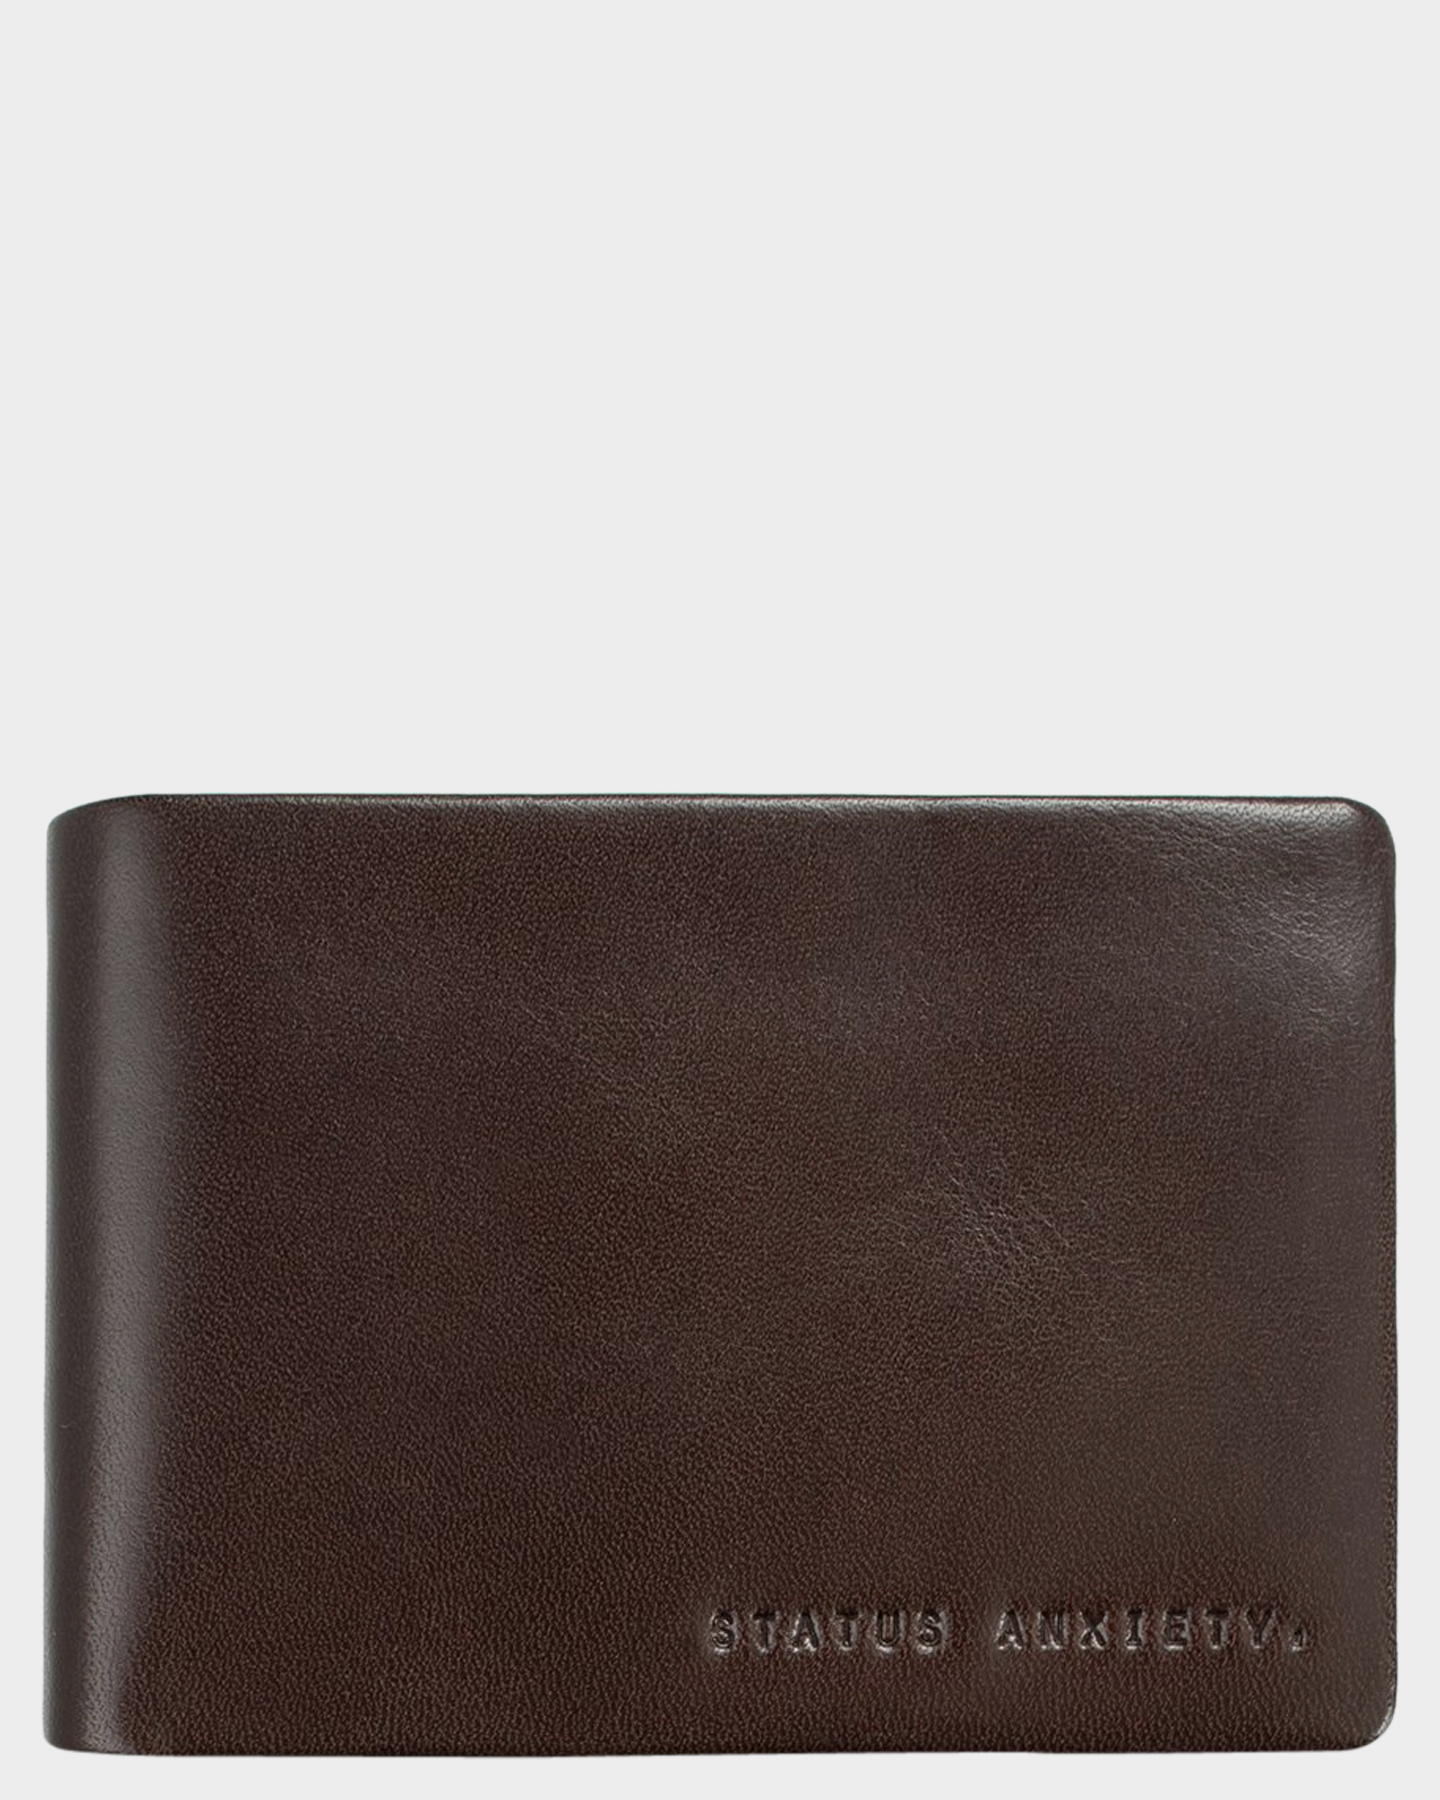 Status Anxiety Jonah Leather Wallet Chocolate Chocolate